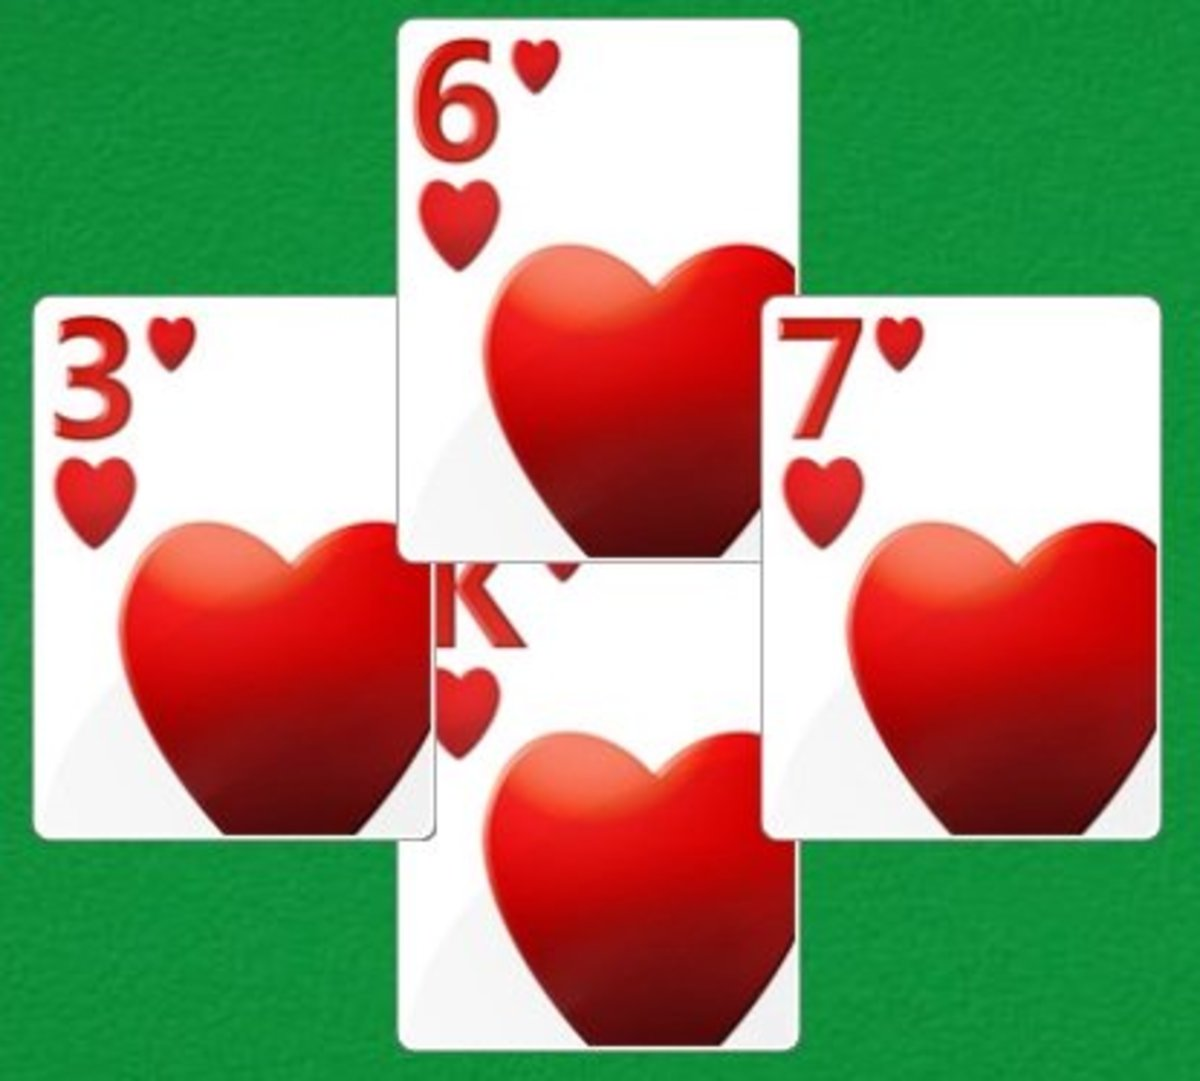 Cards played in the game of Hearts.